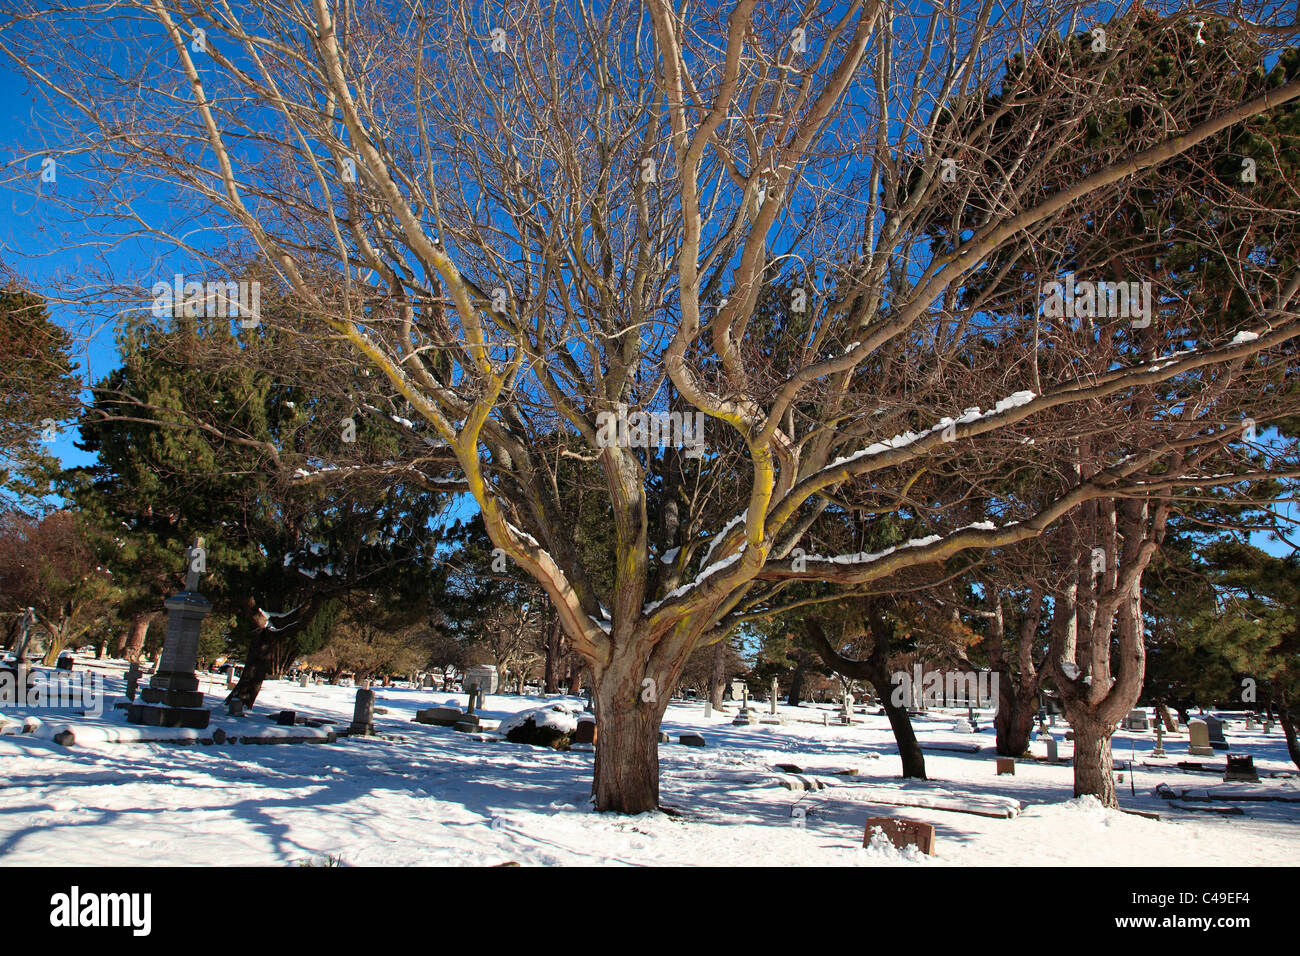 Bare leafless tree with moss growing on the branches on a sunny winter day. - Stock Image